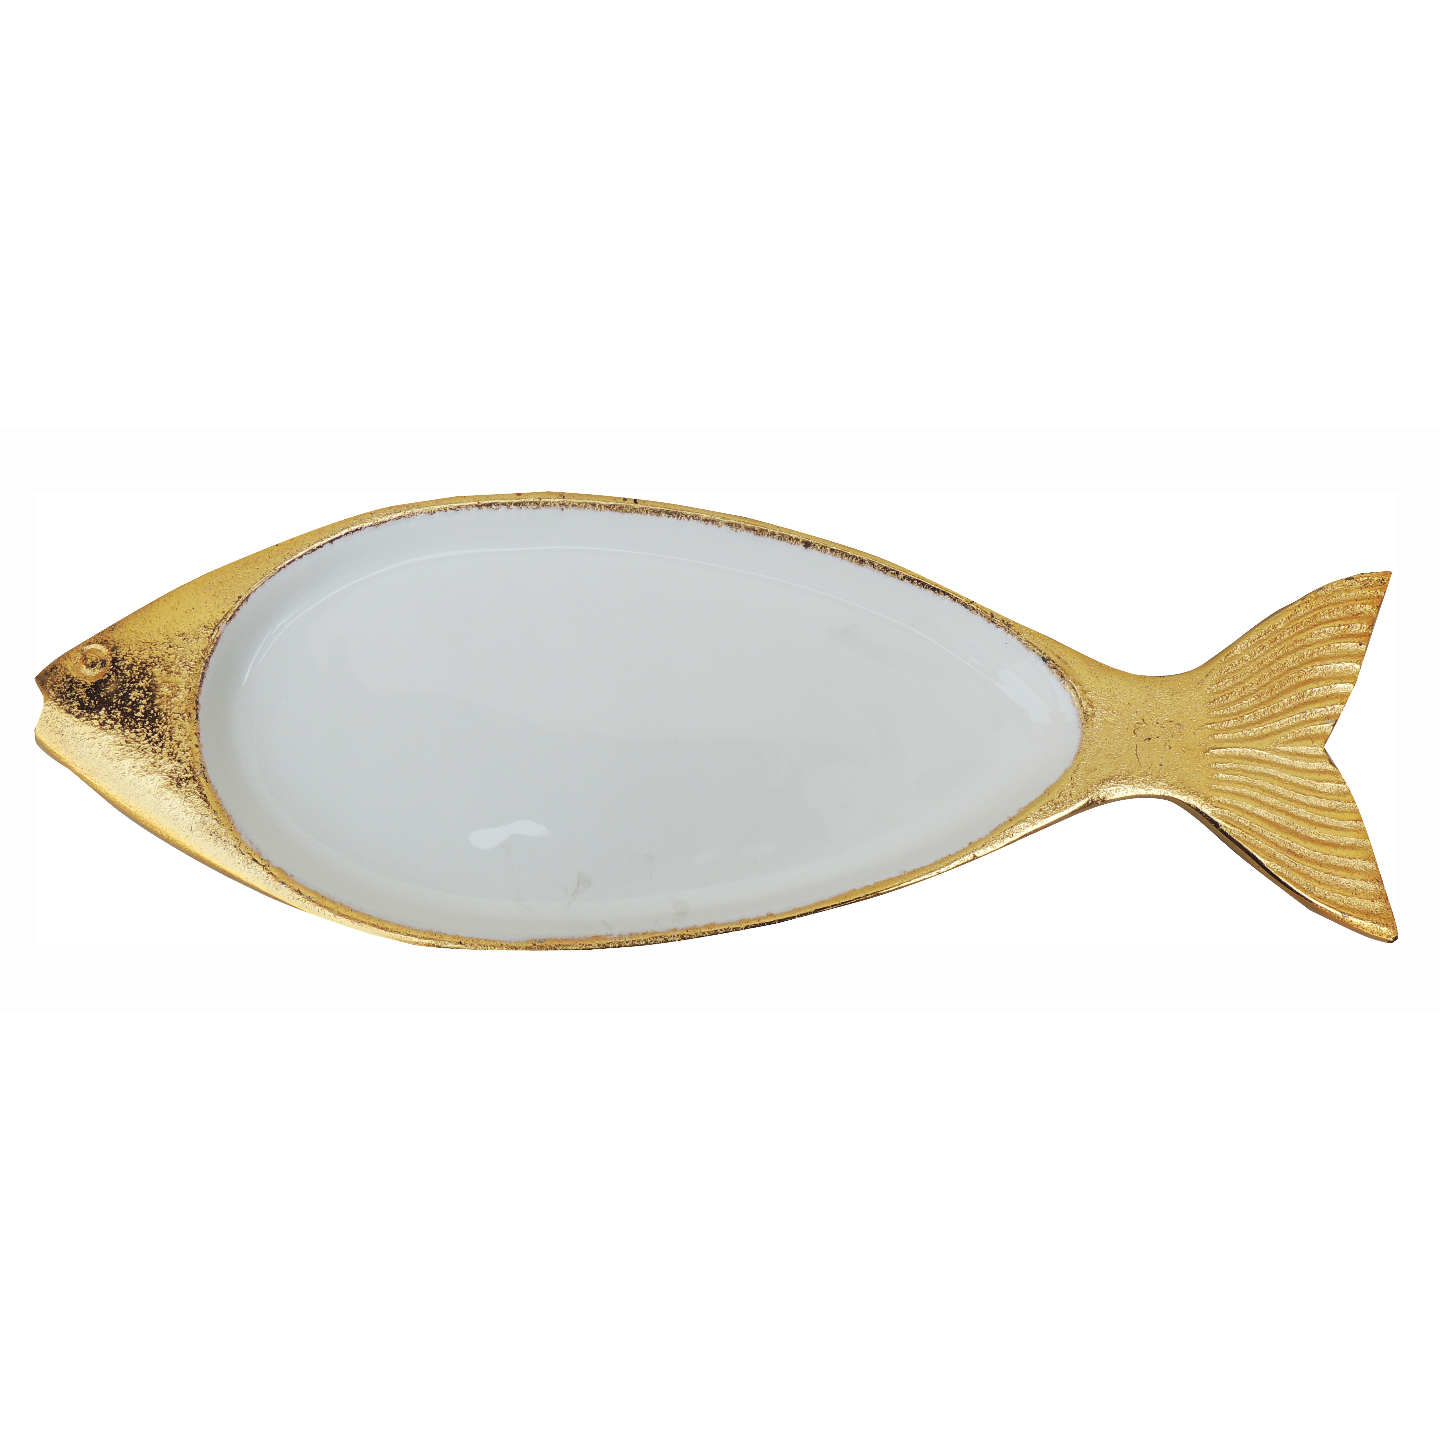 Aluminium Metal Fish Shape Tray Serving Platter Gold and White finish - 165 Inch  A319416